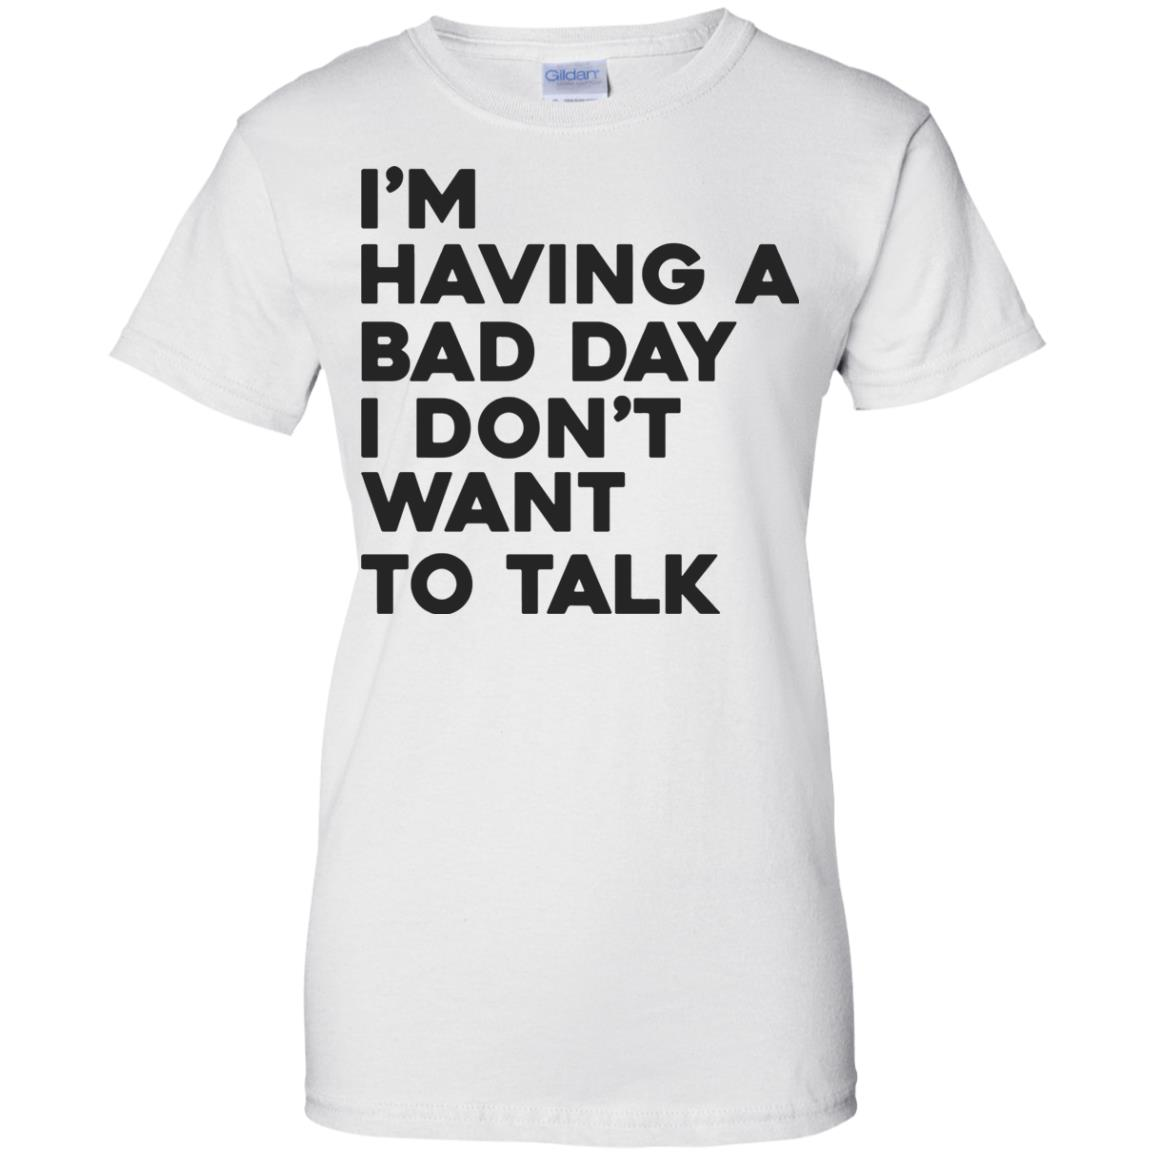 image 244px I'm having a bad day I don't want to talk t shirt, hoodies, tank